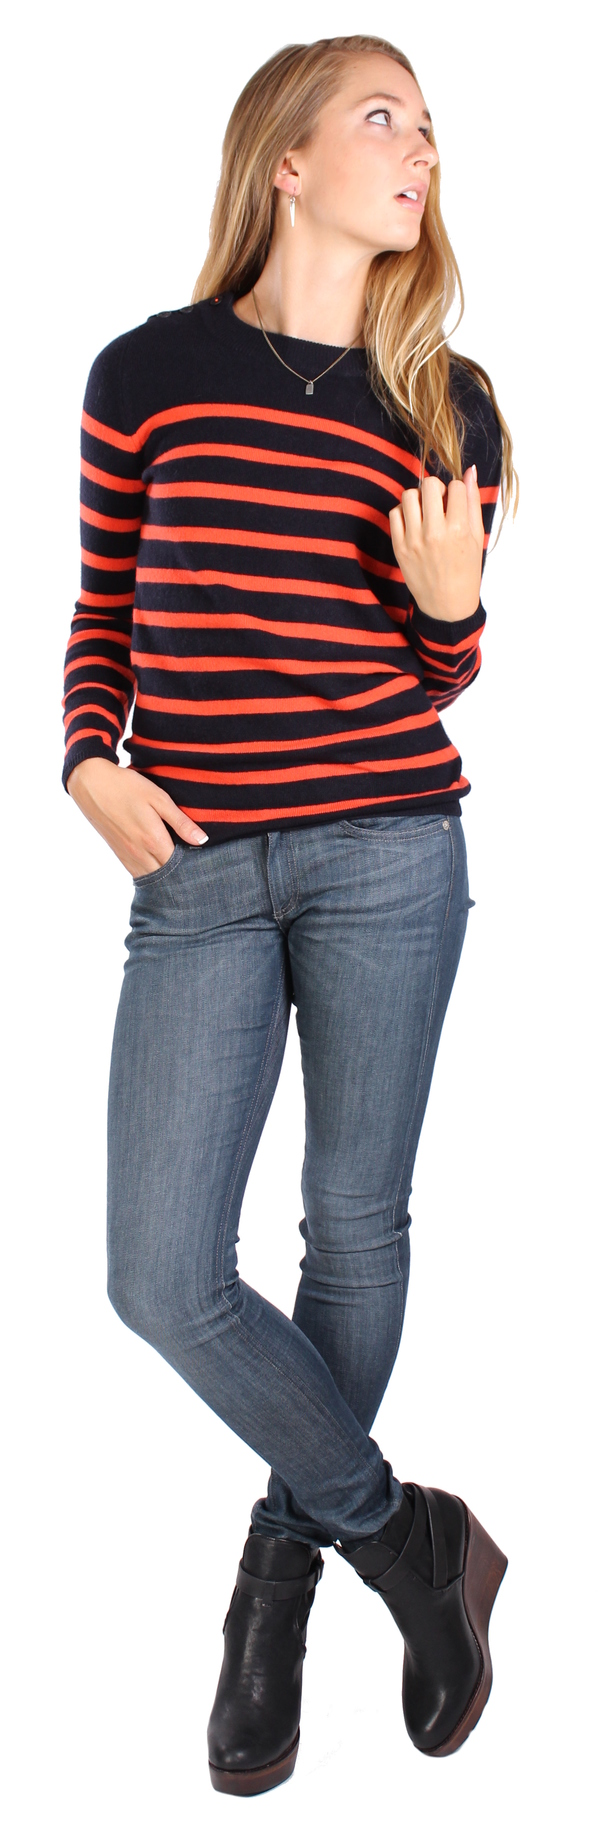 Chinti & Parker Guernsey Stripe Sweater